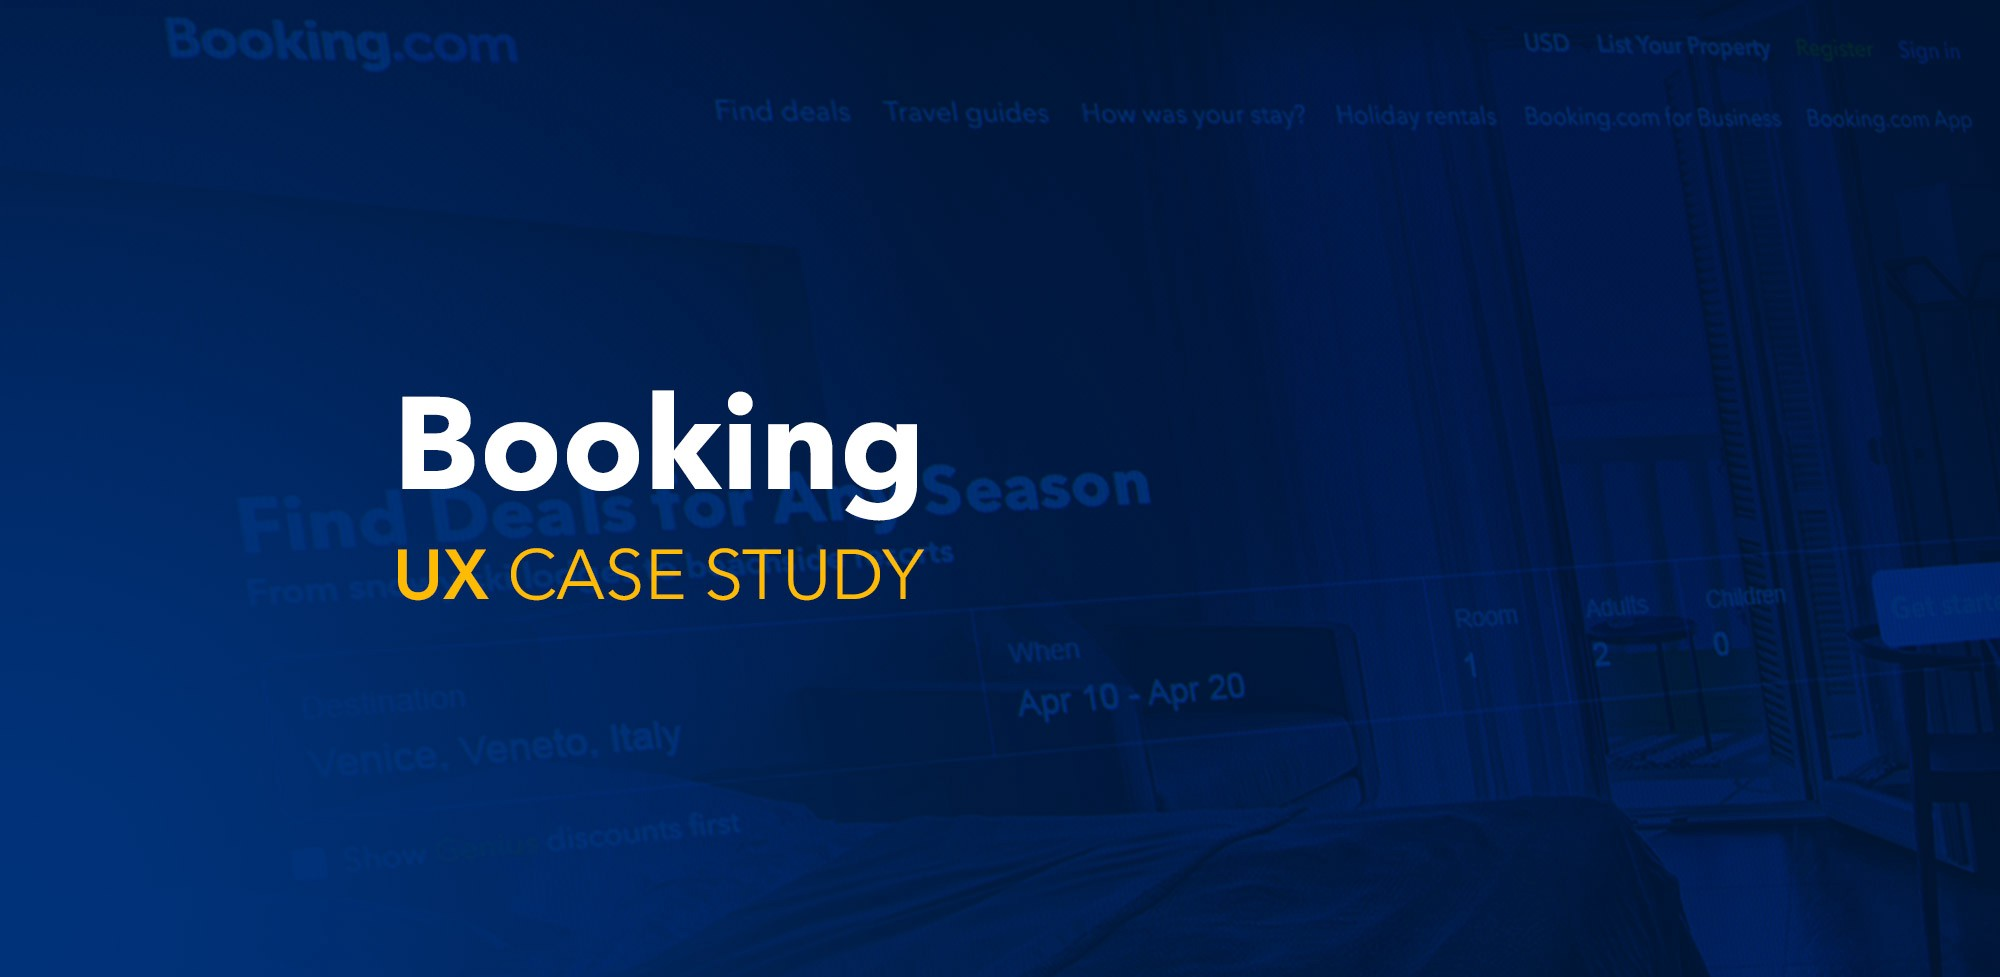 Booking com: A UX Case Study - UX Collective